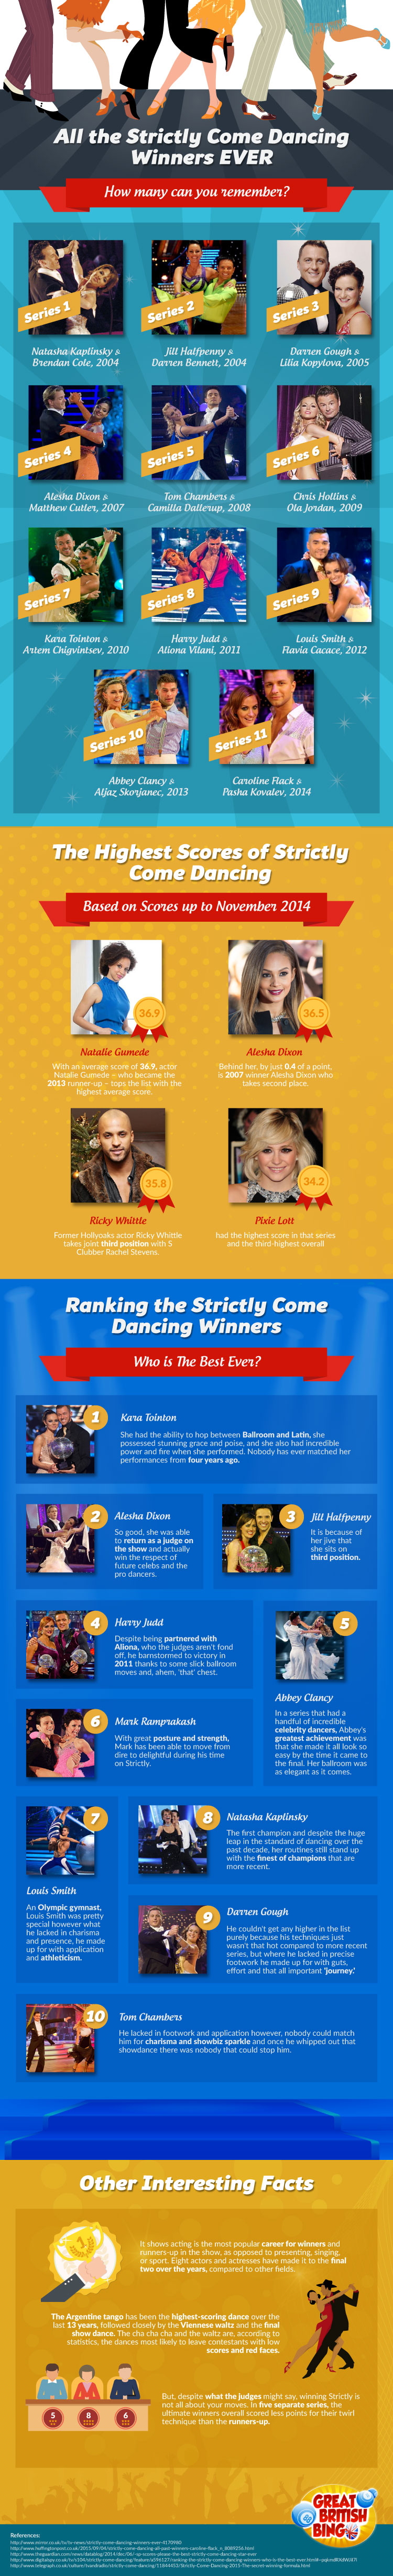 Strictly-Come-Dancing